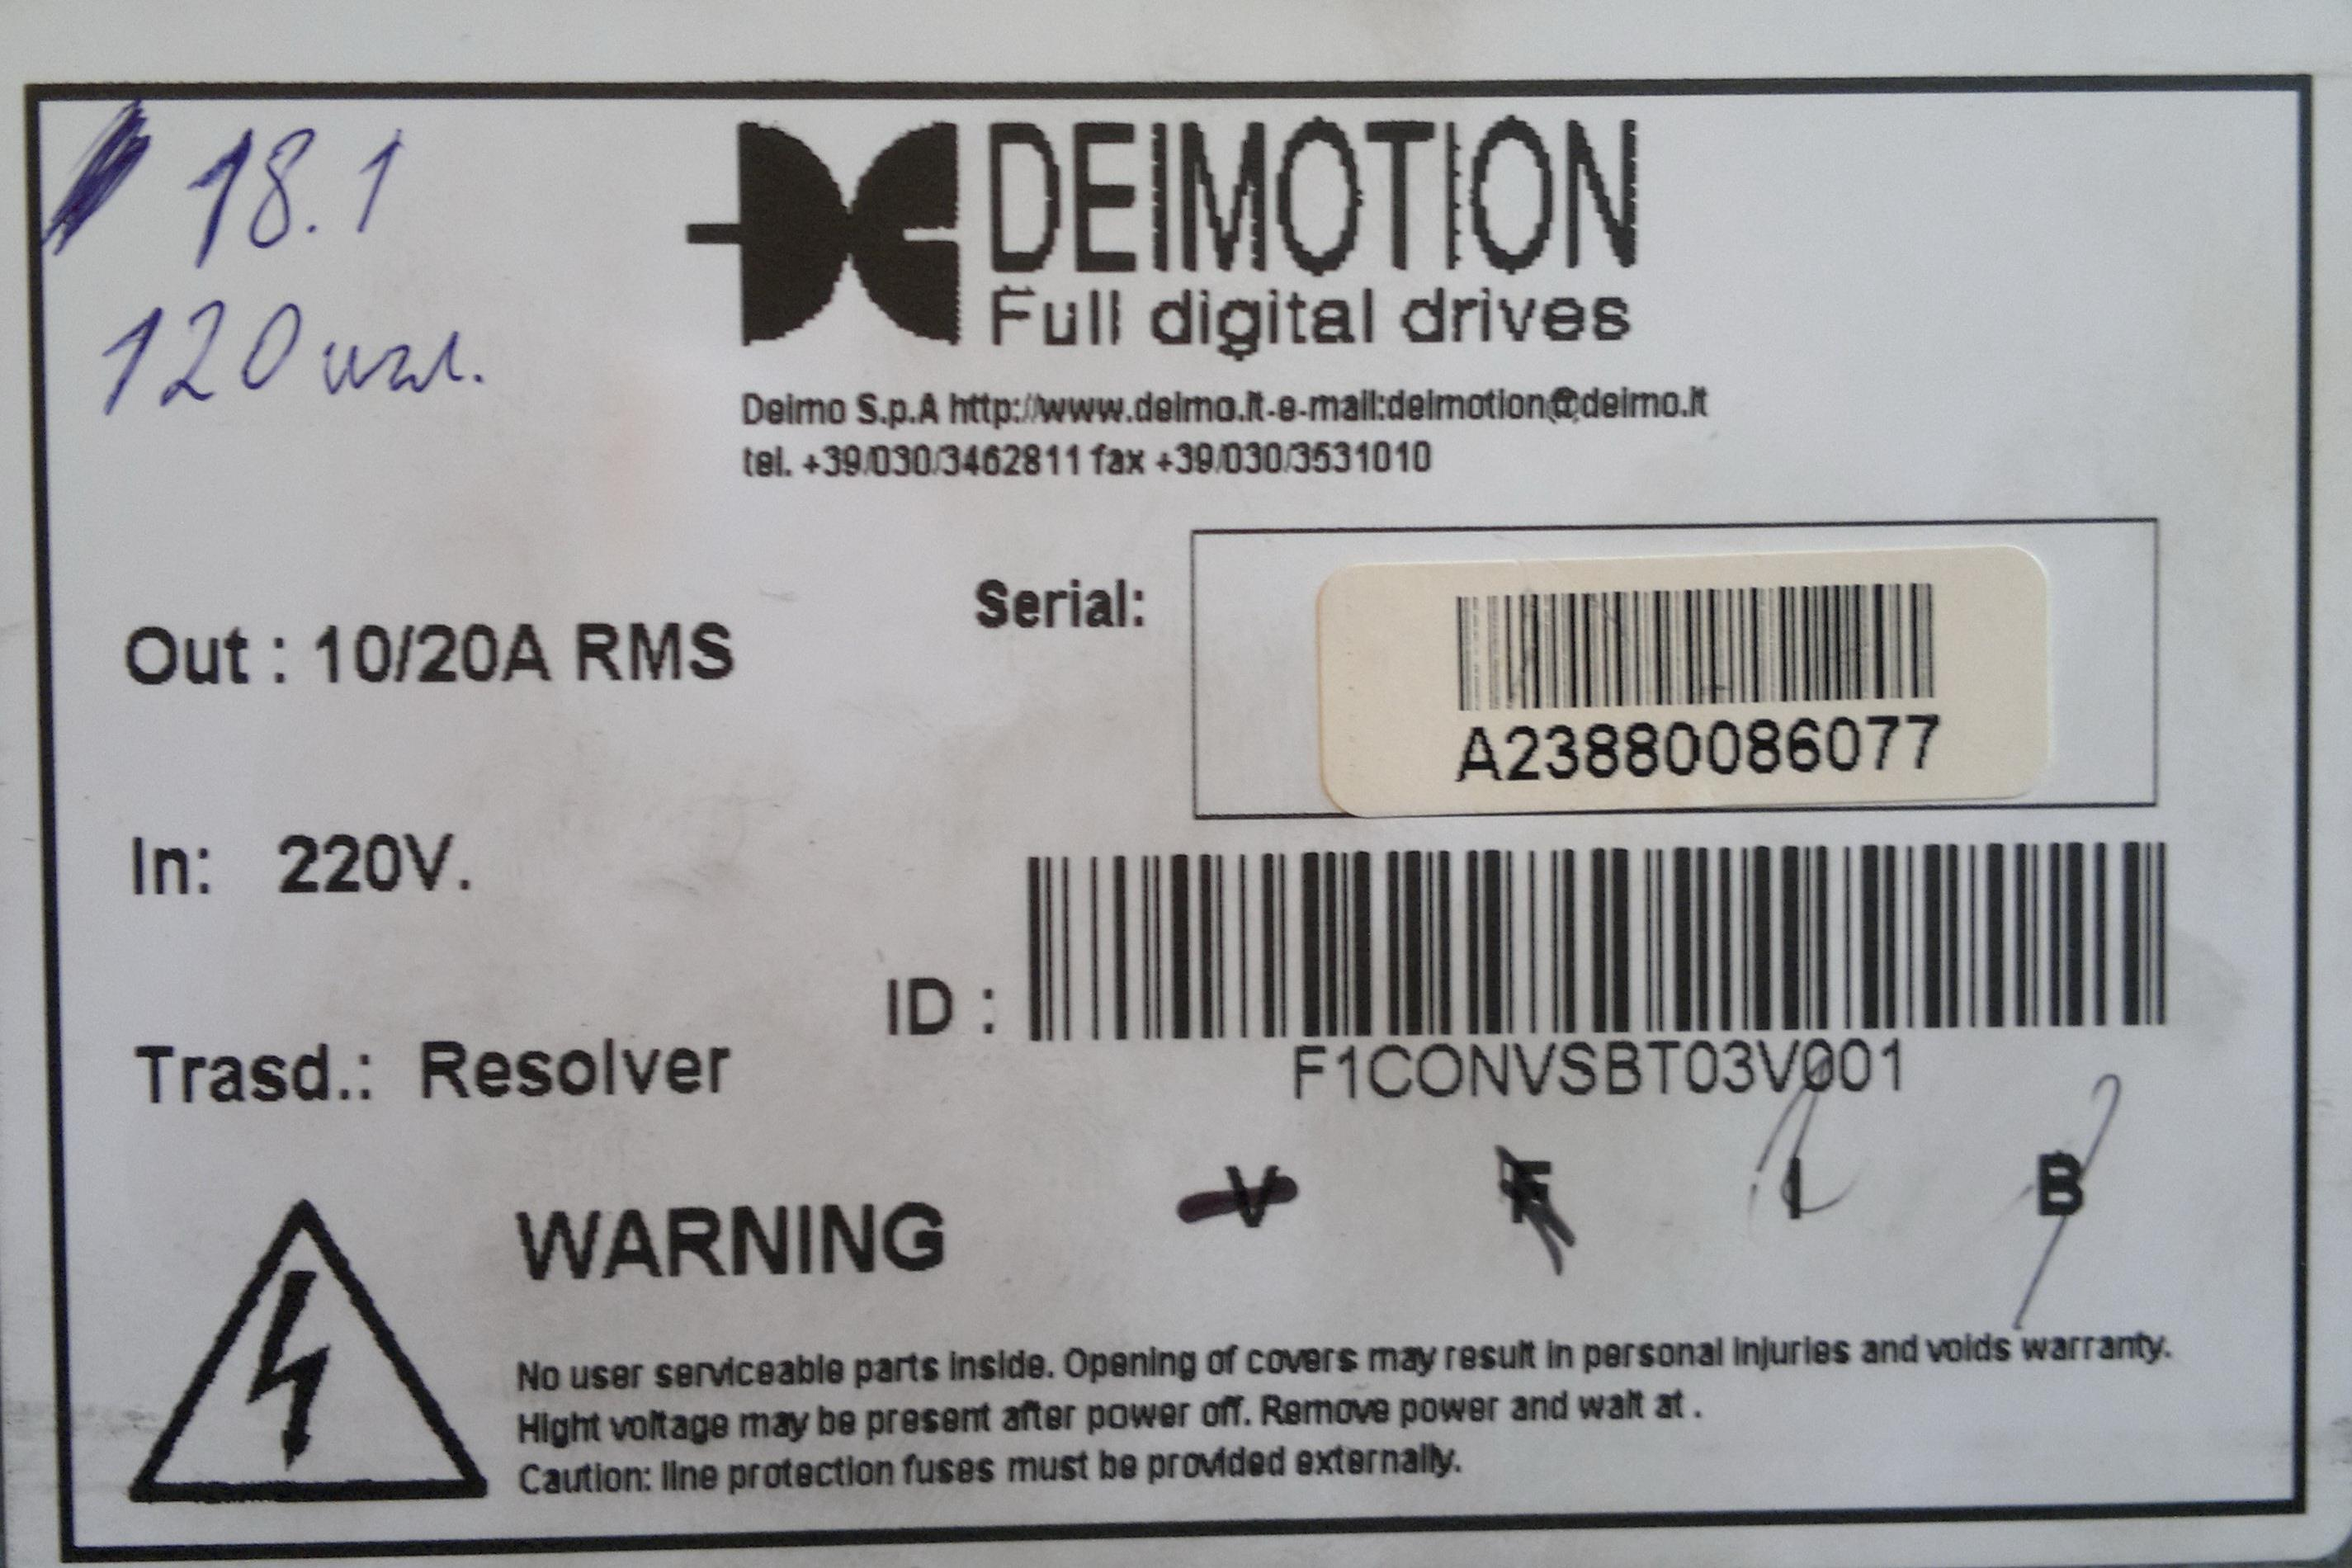 deimotion_full_digital_drives1.jpg